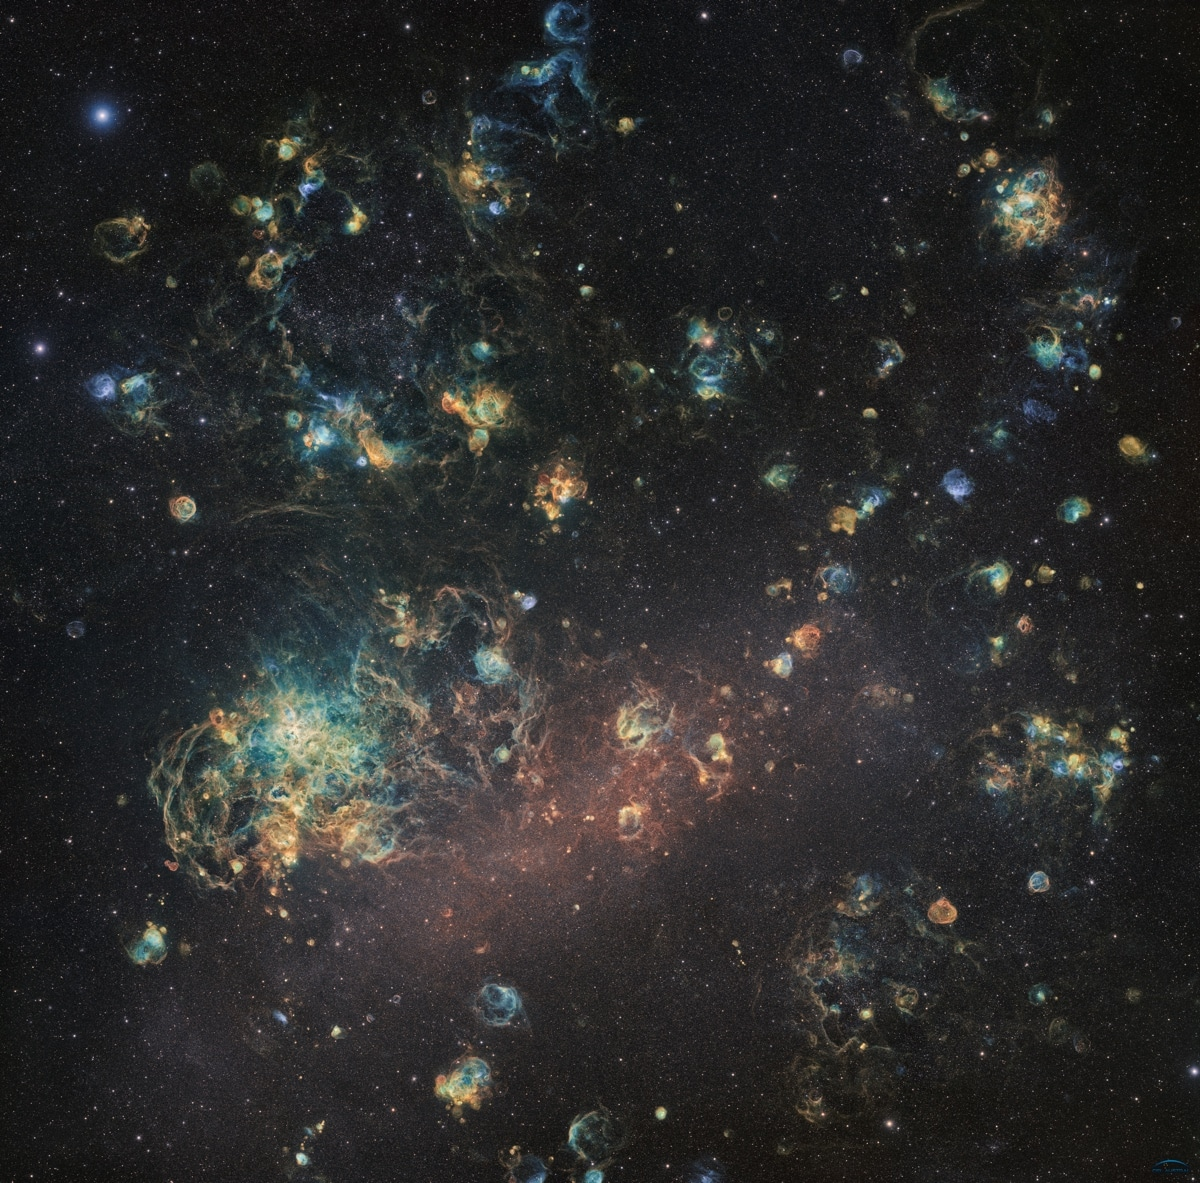 The Large Magellanic Cloud by Team Ciel Austral